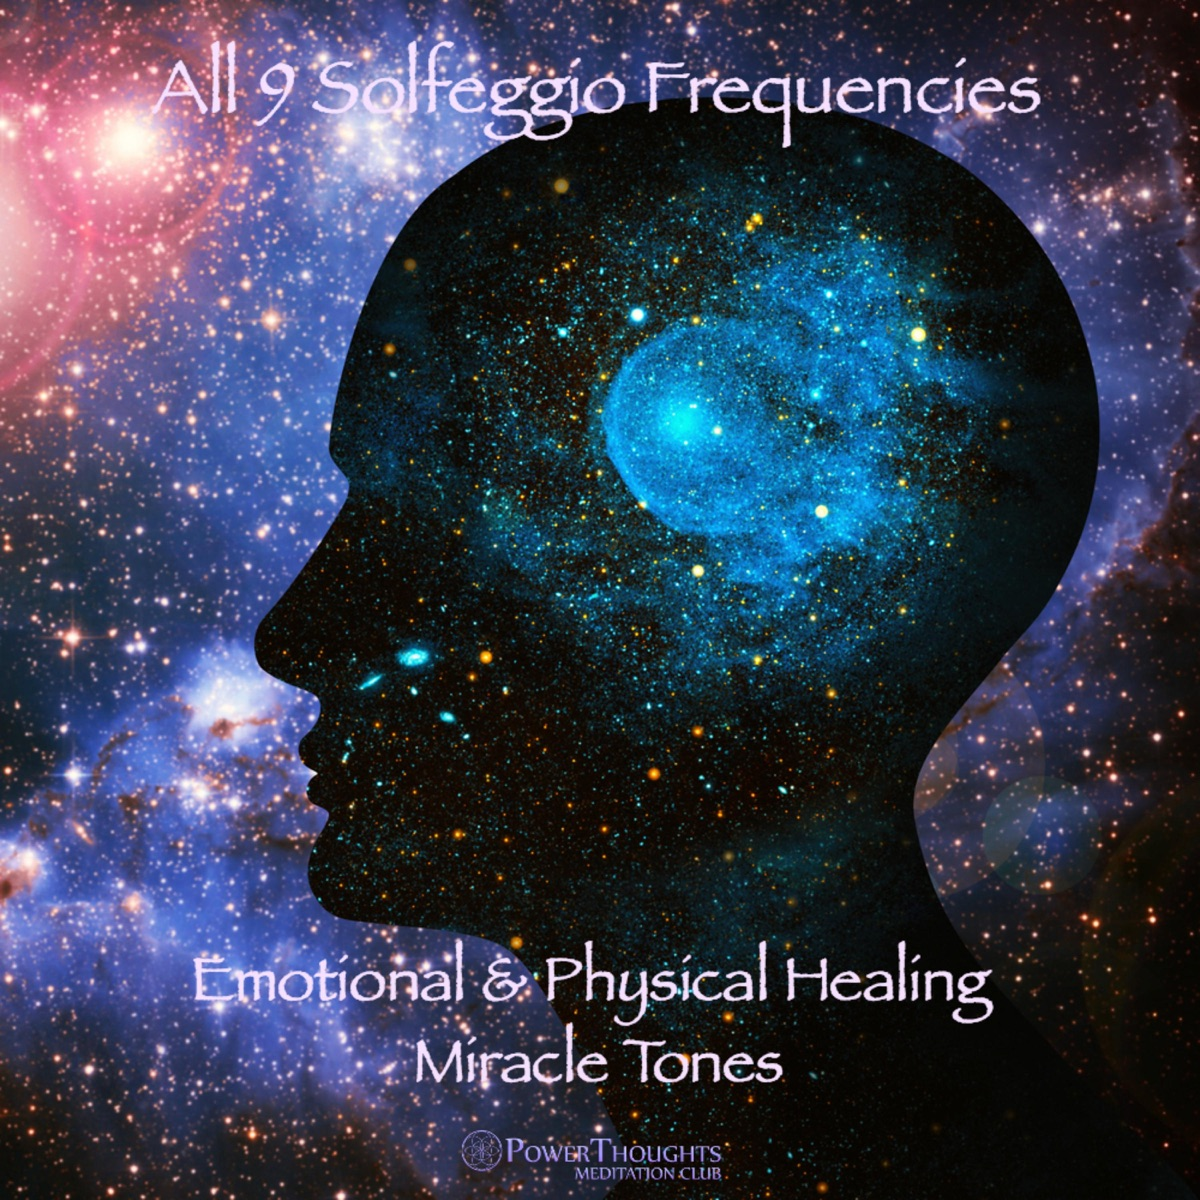 All 9 Solfeggio Frequencies: Emotional & Physical Healing - Miracle